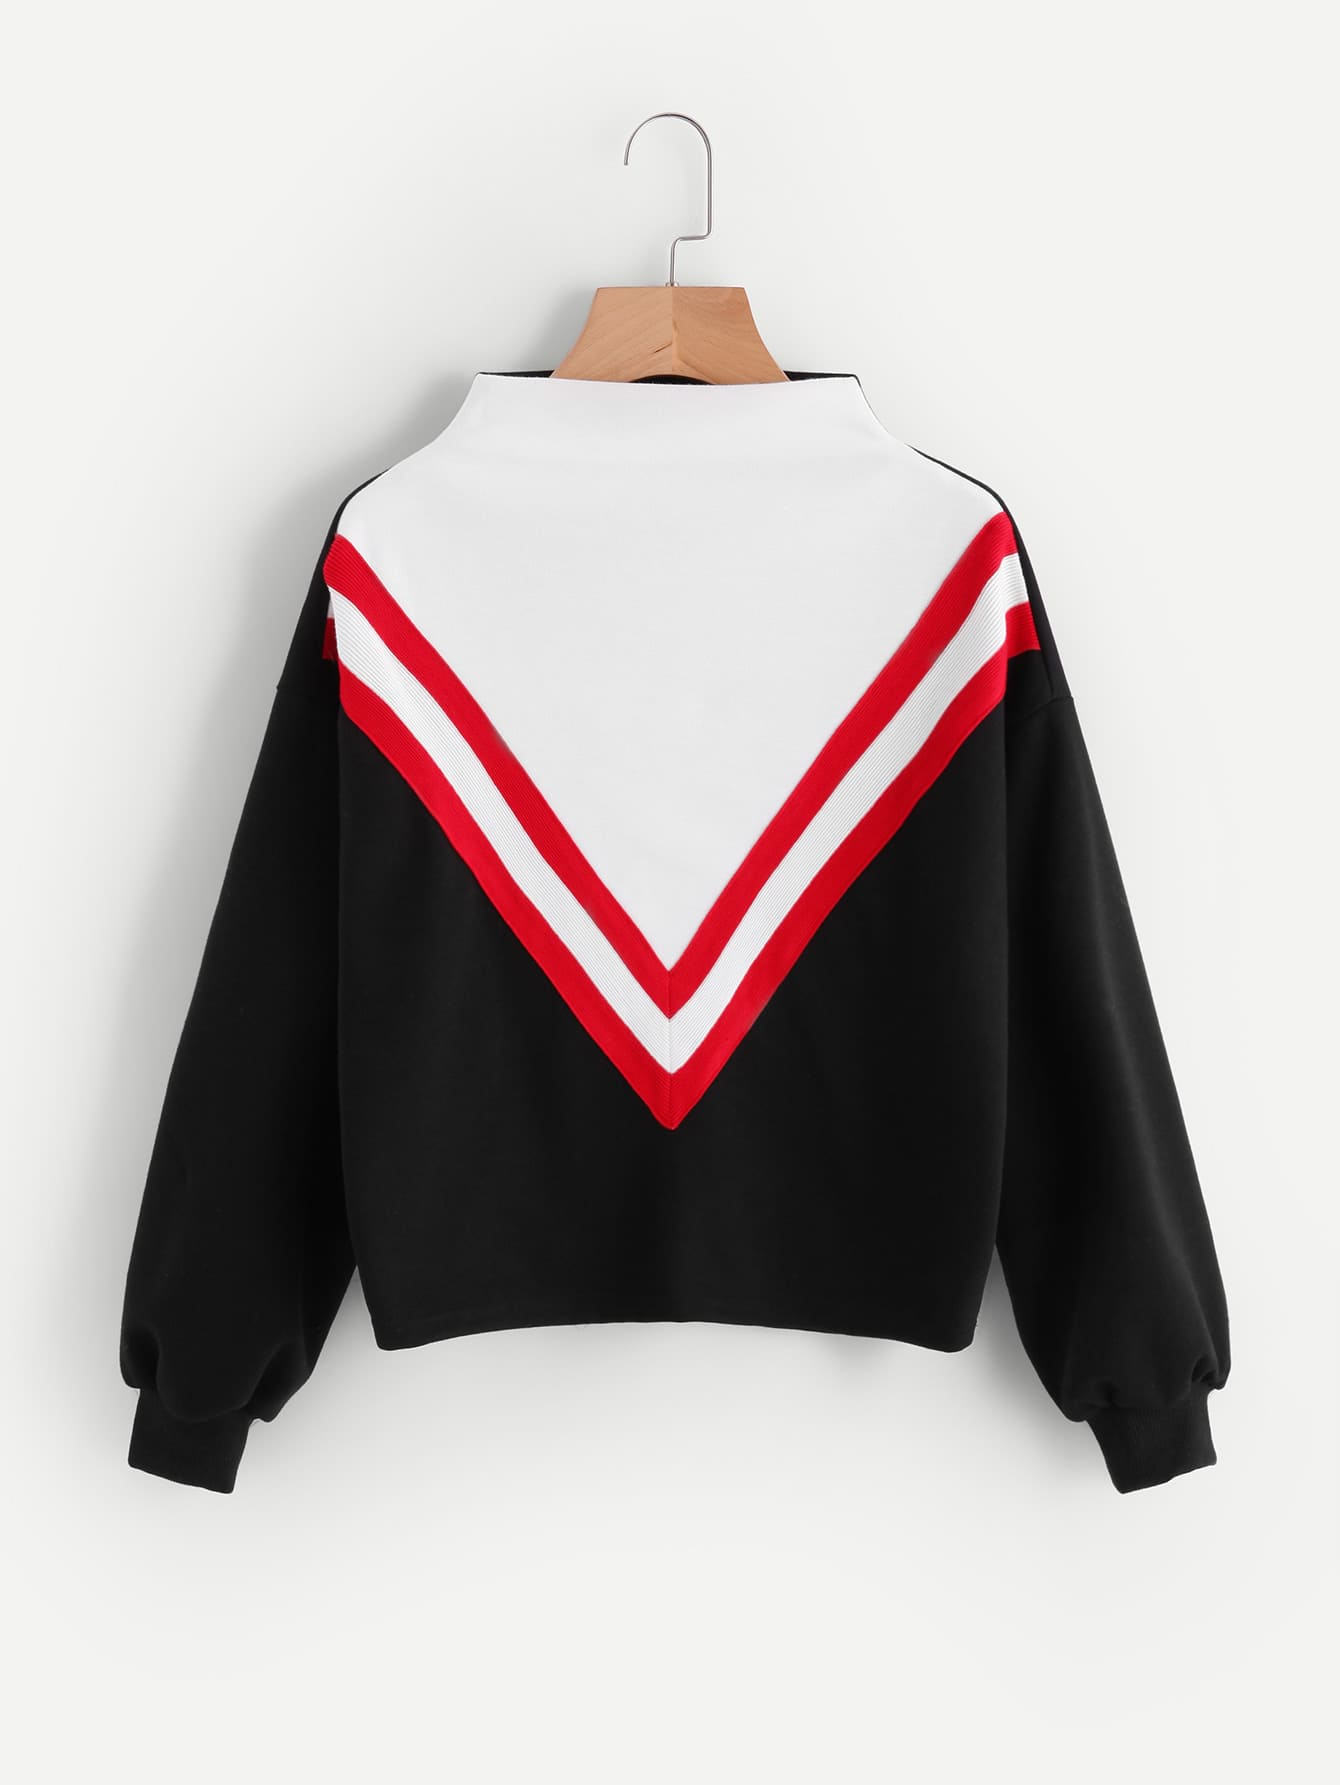 Mock Neck Cut And Sew Sweatshirt mock collar sweatshirt cut out top white